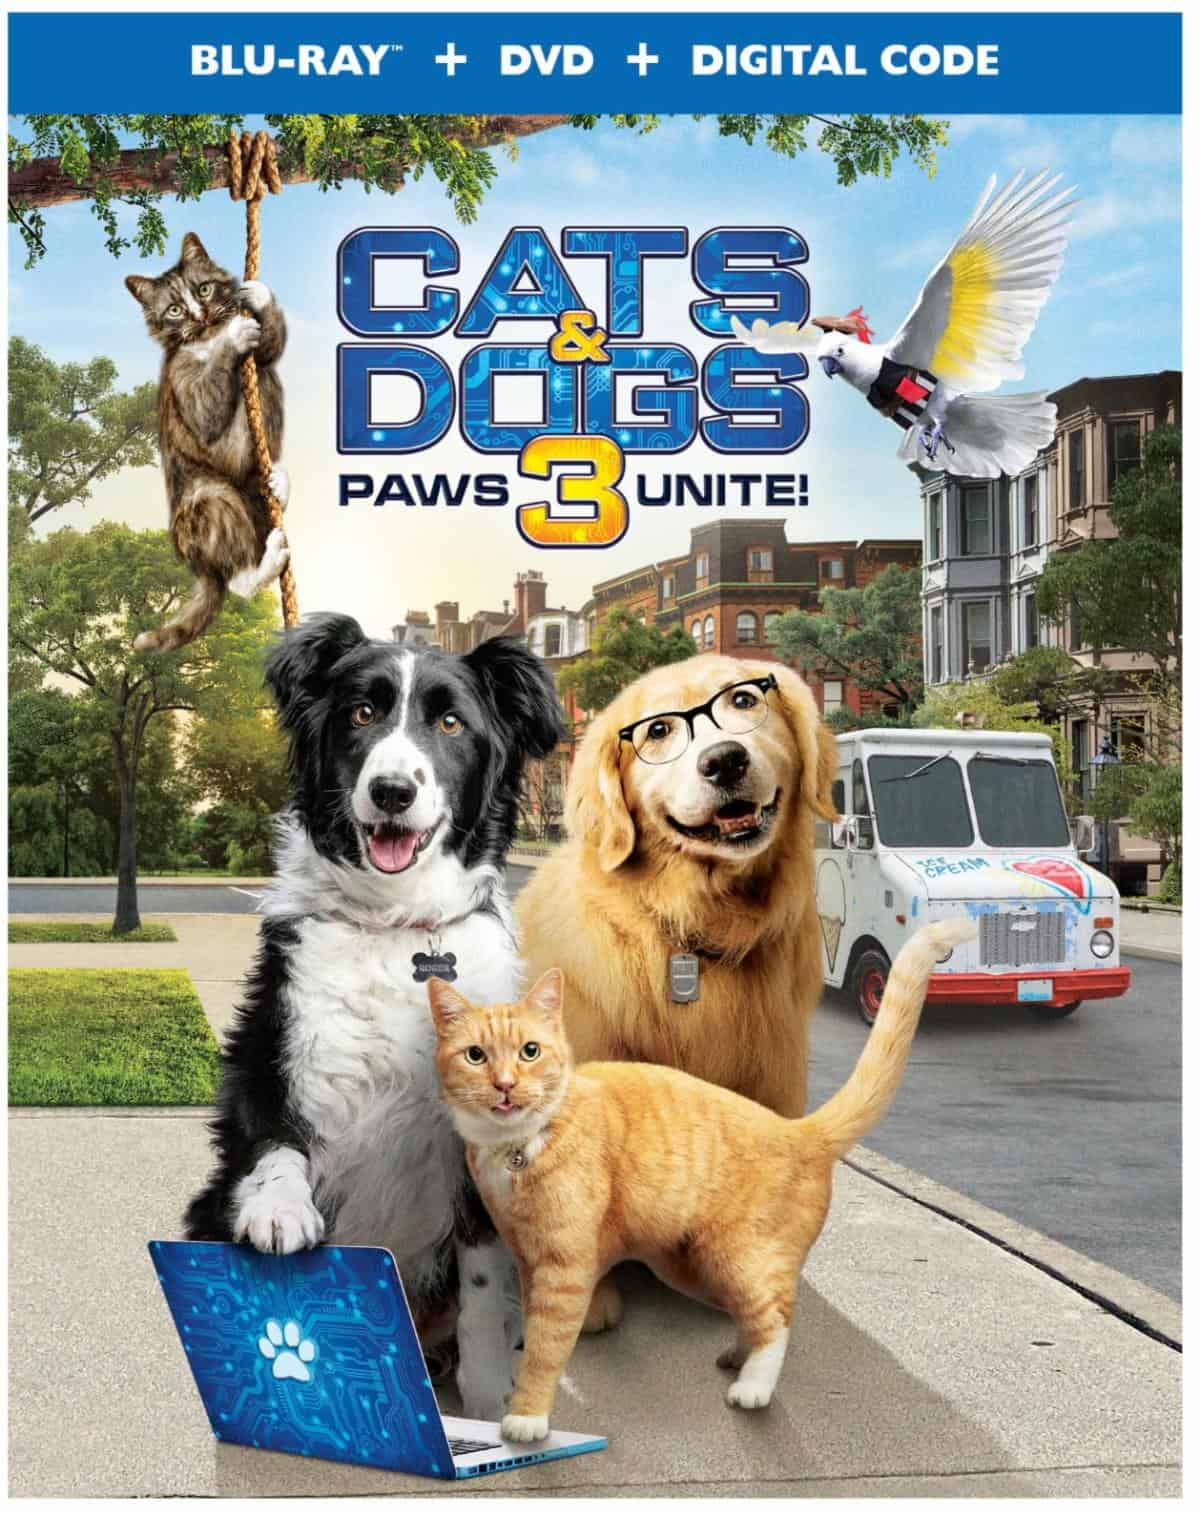 cats and dogs 3 blu ray box cats & dogs 3 paws unite